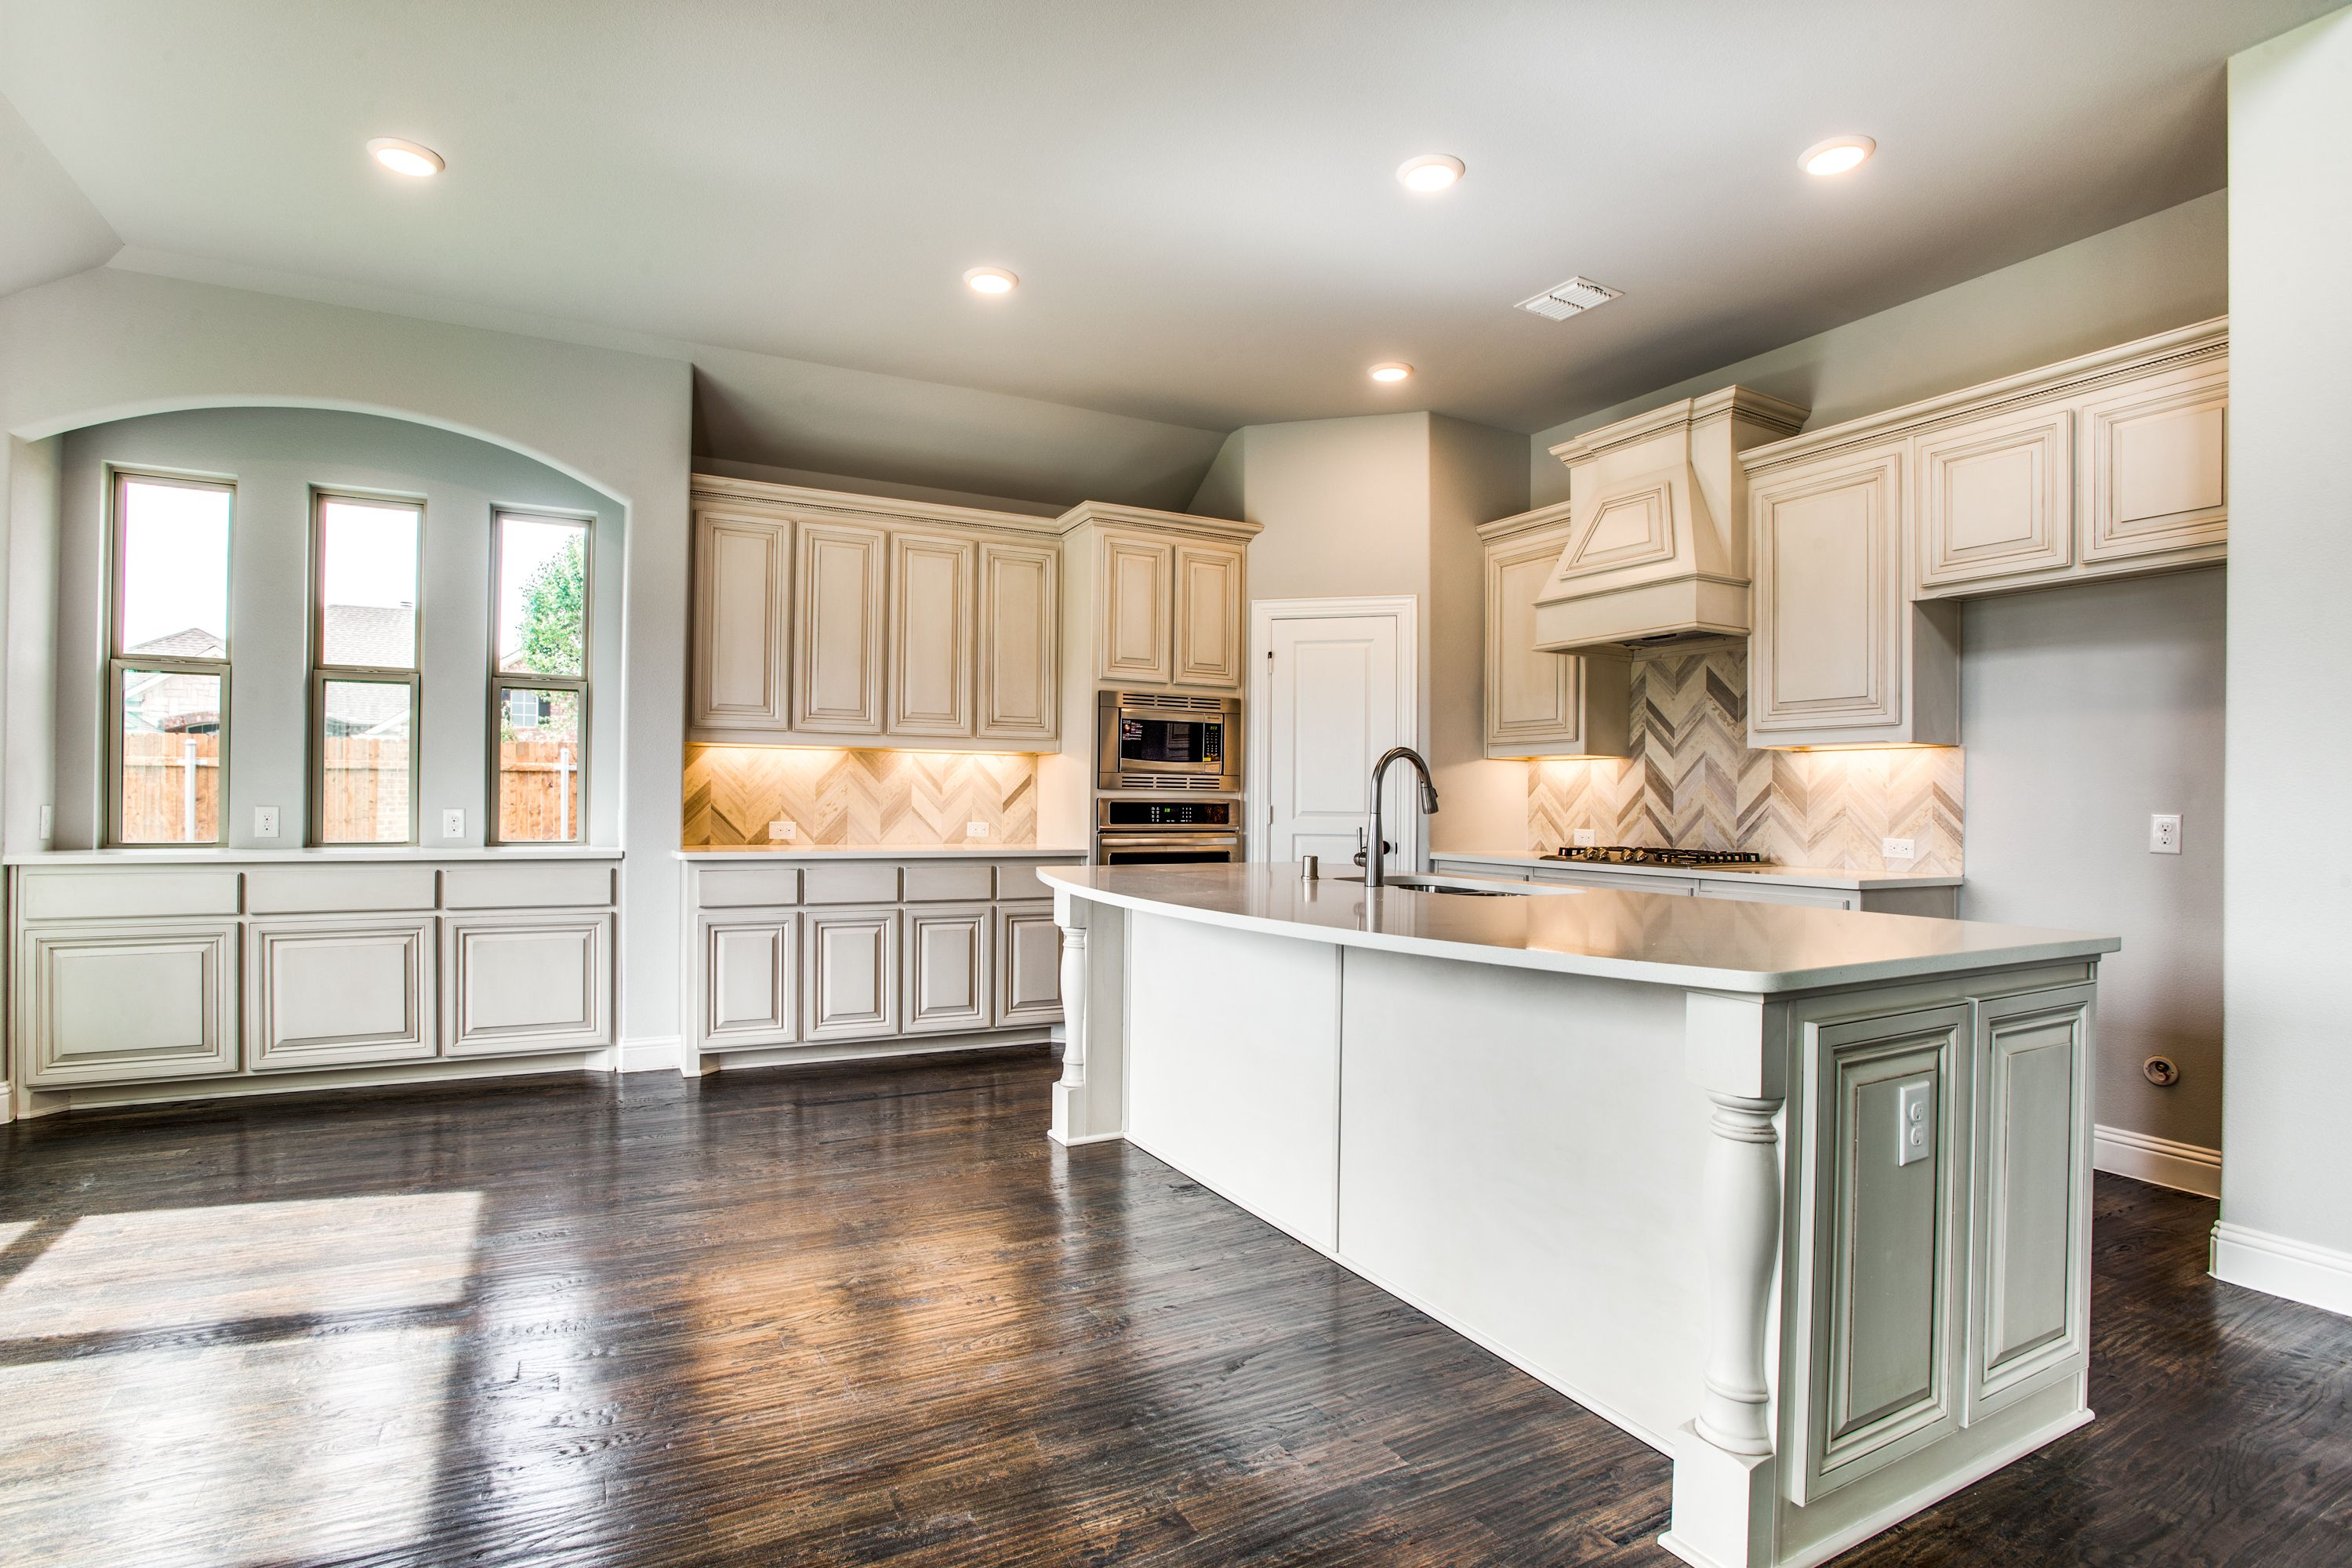 Plenty Of Room For Entertaining In This Kitchen And With Design That All Your Neighbors Will Be Envious Of D Bloomfield Homes New Homes New Homes For Sale